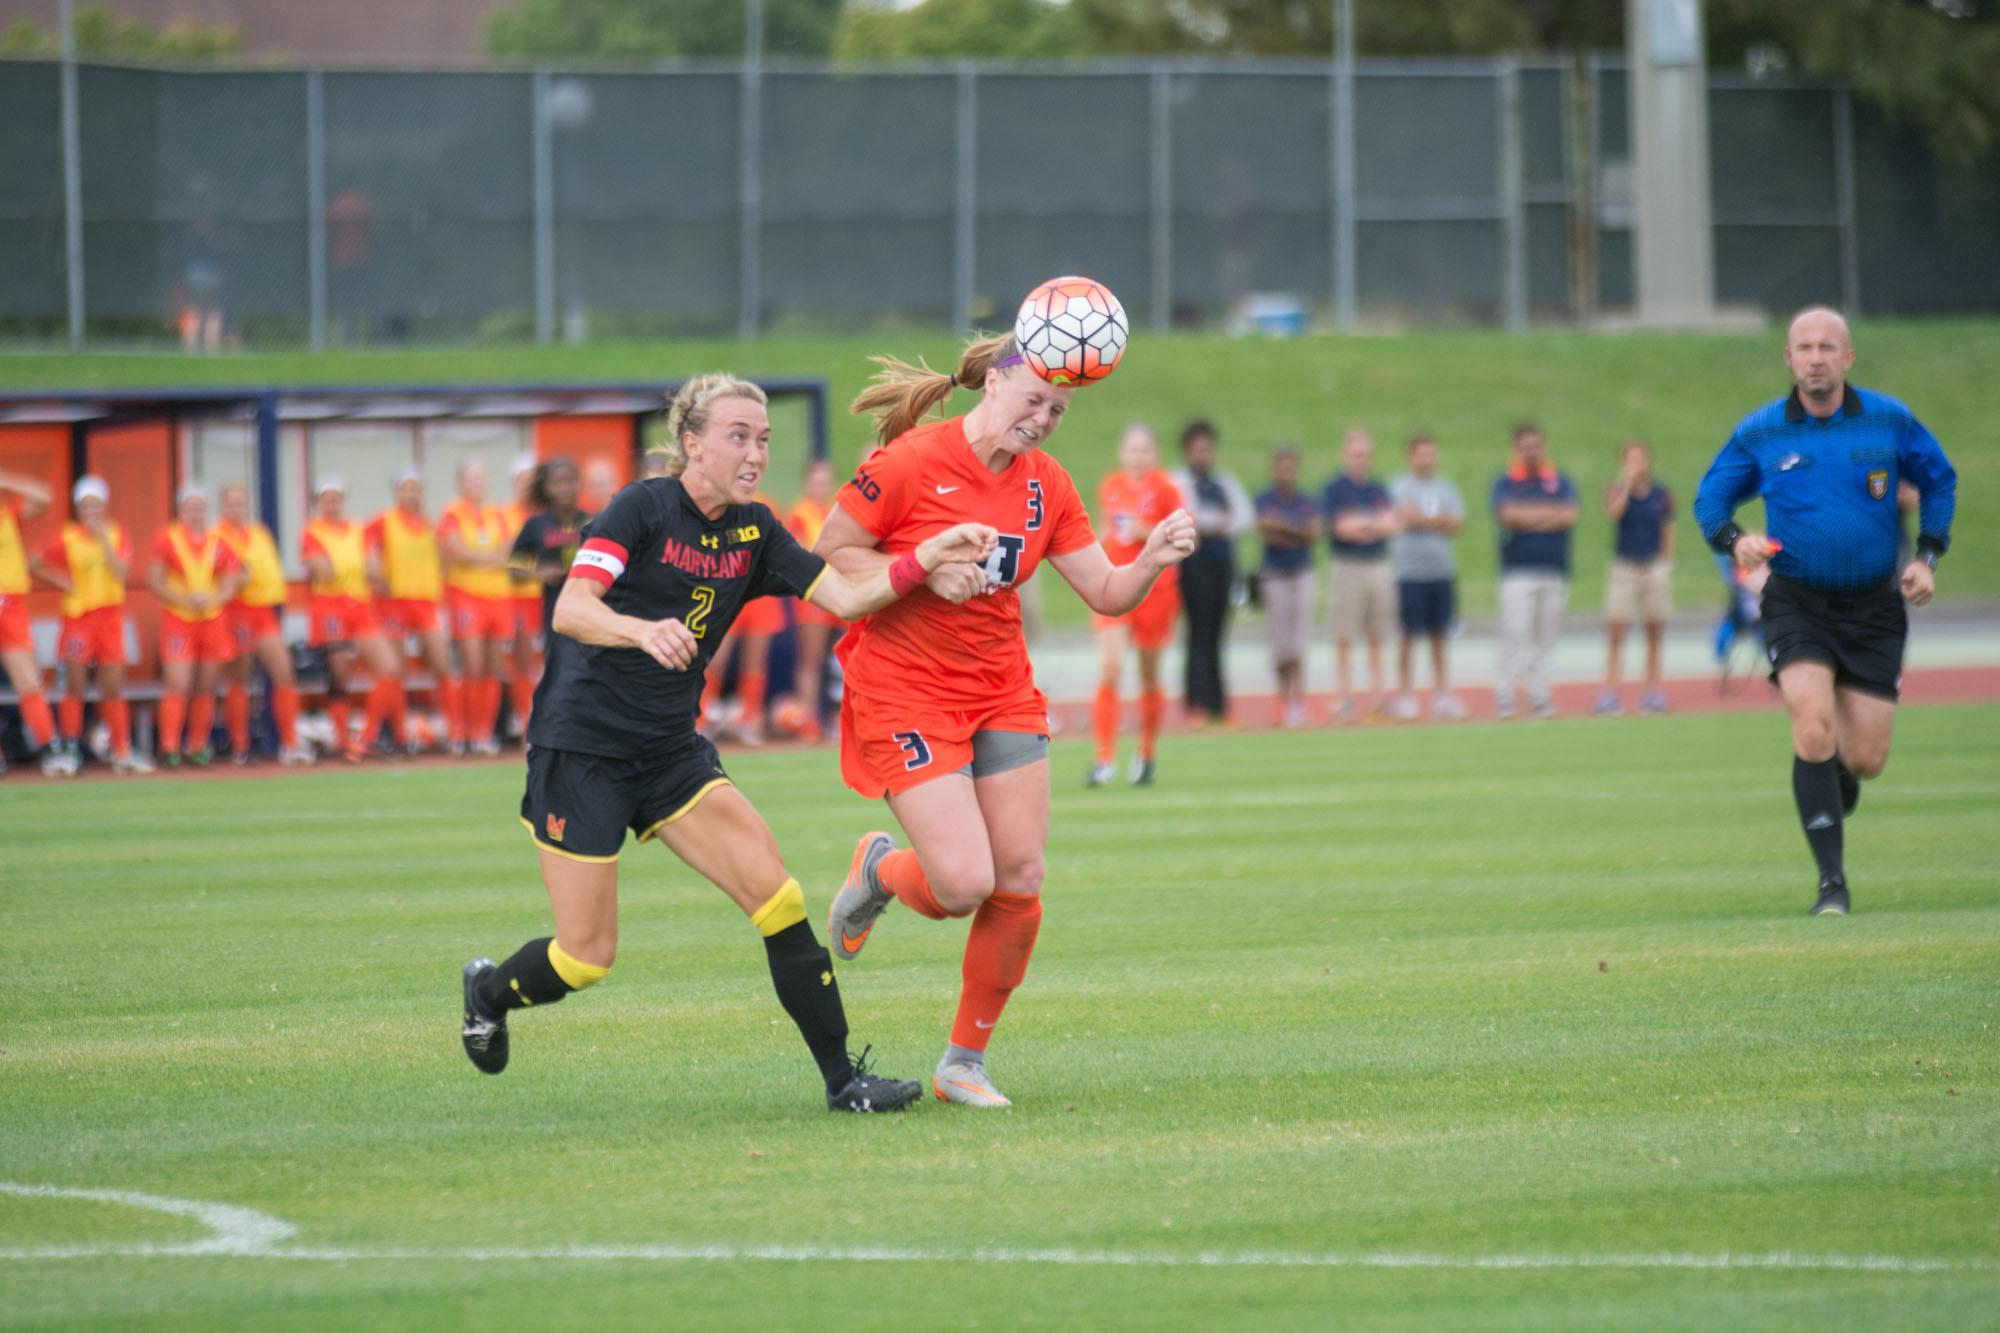 Jannelle Flaws heads the ball forward during the game against Maryland at Illinois Soccer and Track Stadium on Thursday. Illinois won 2-1 in double overtime.